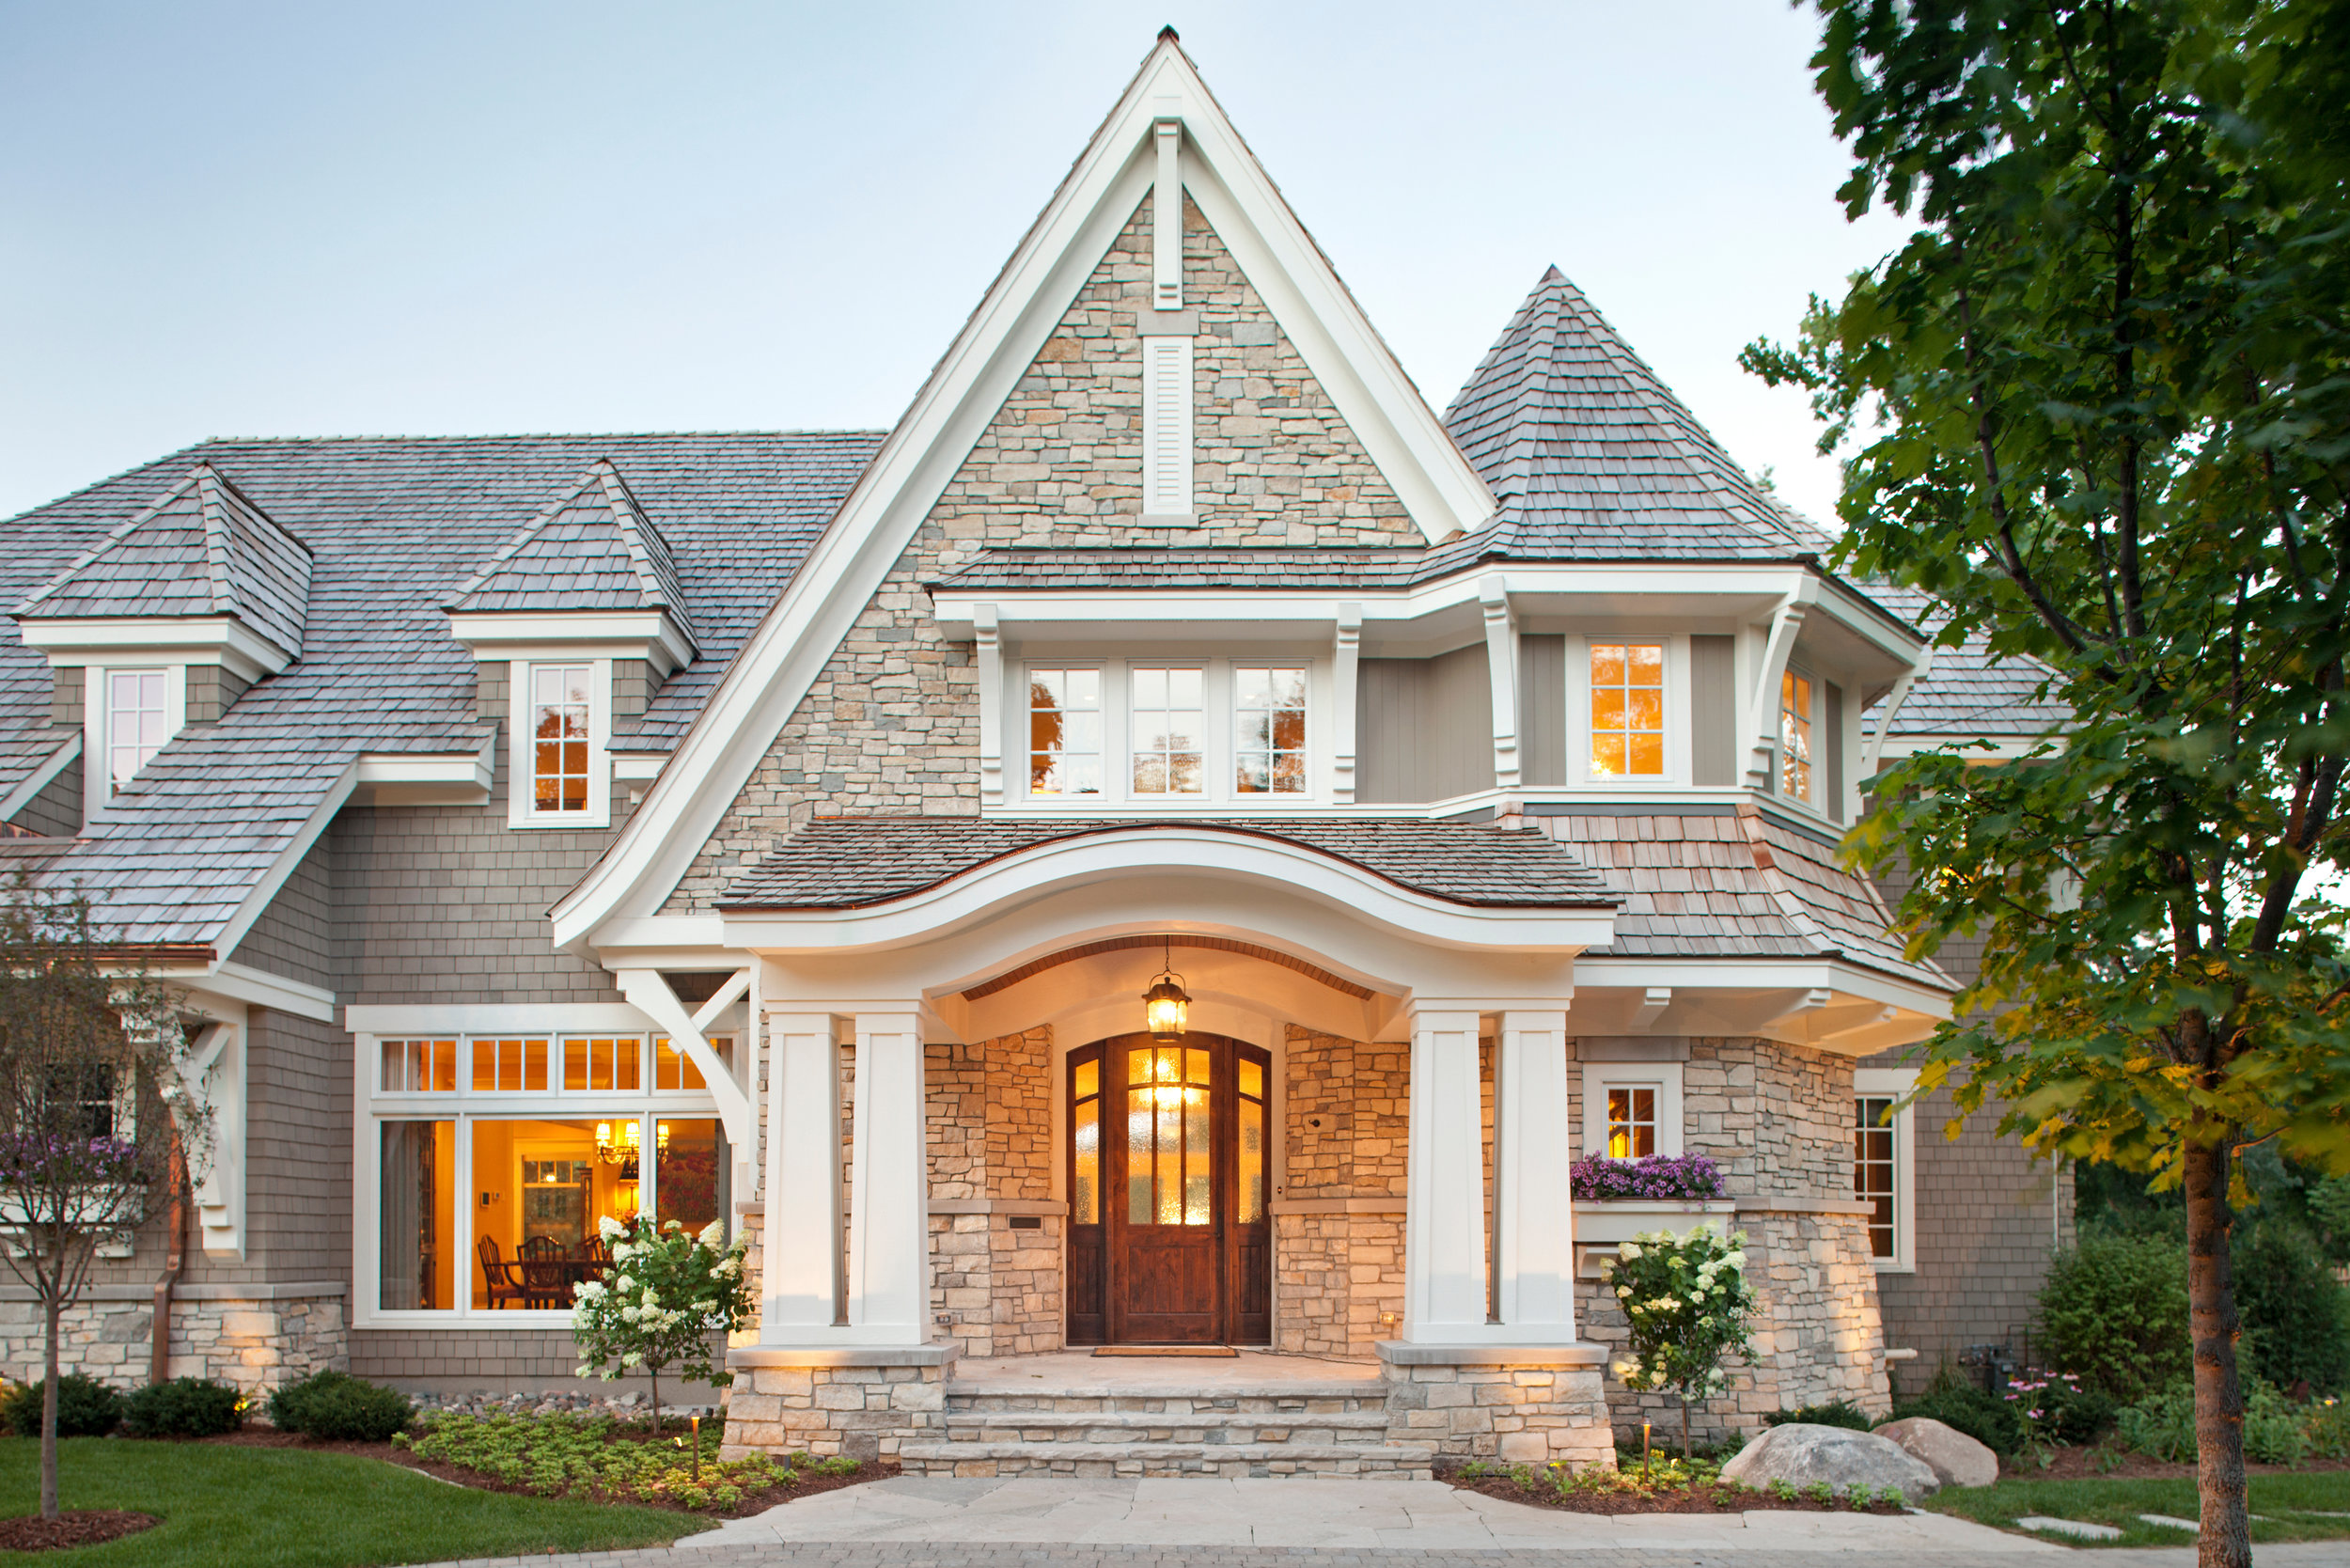 Country Club Home